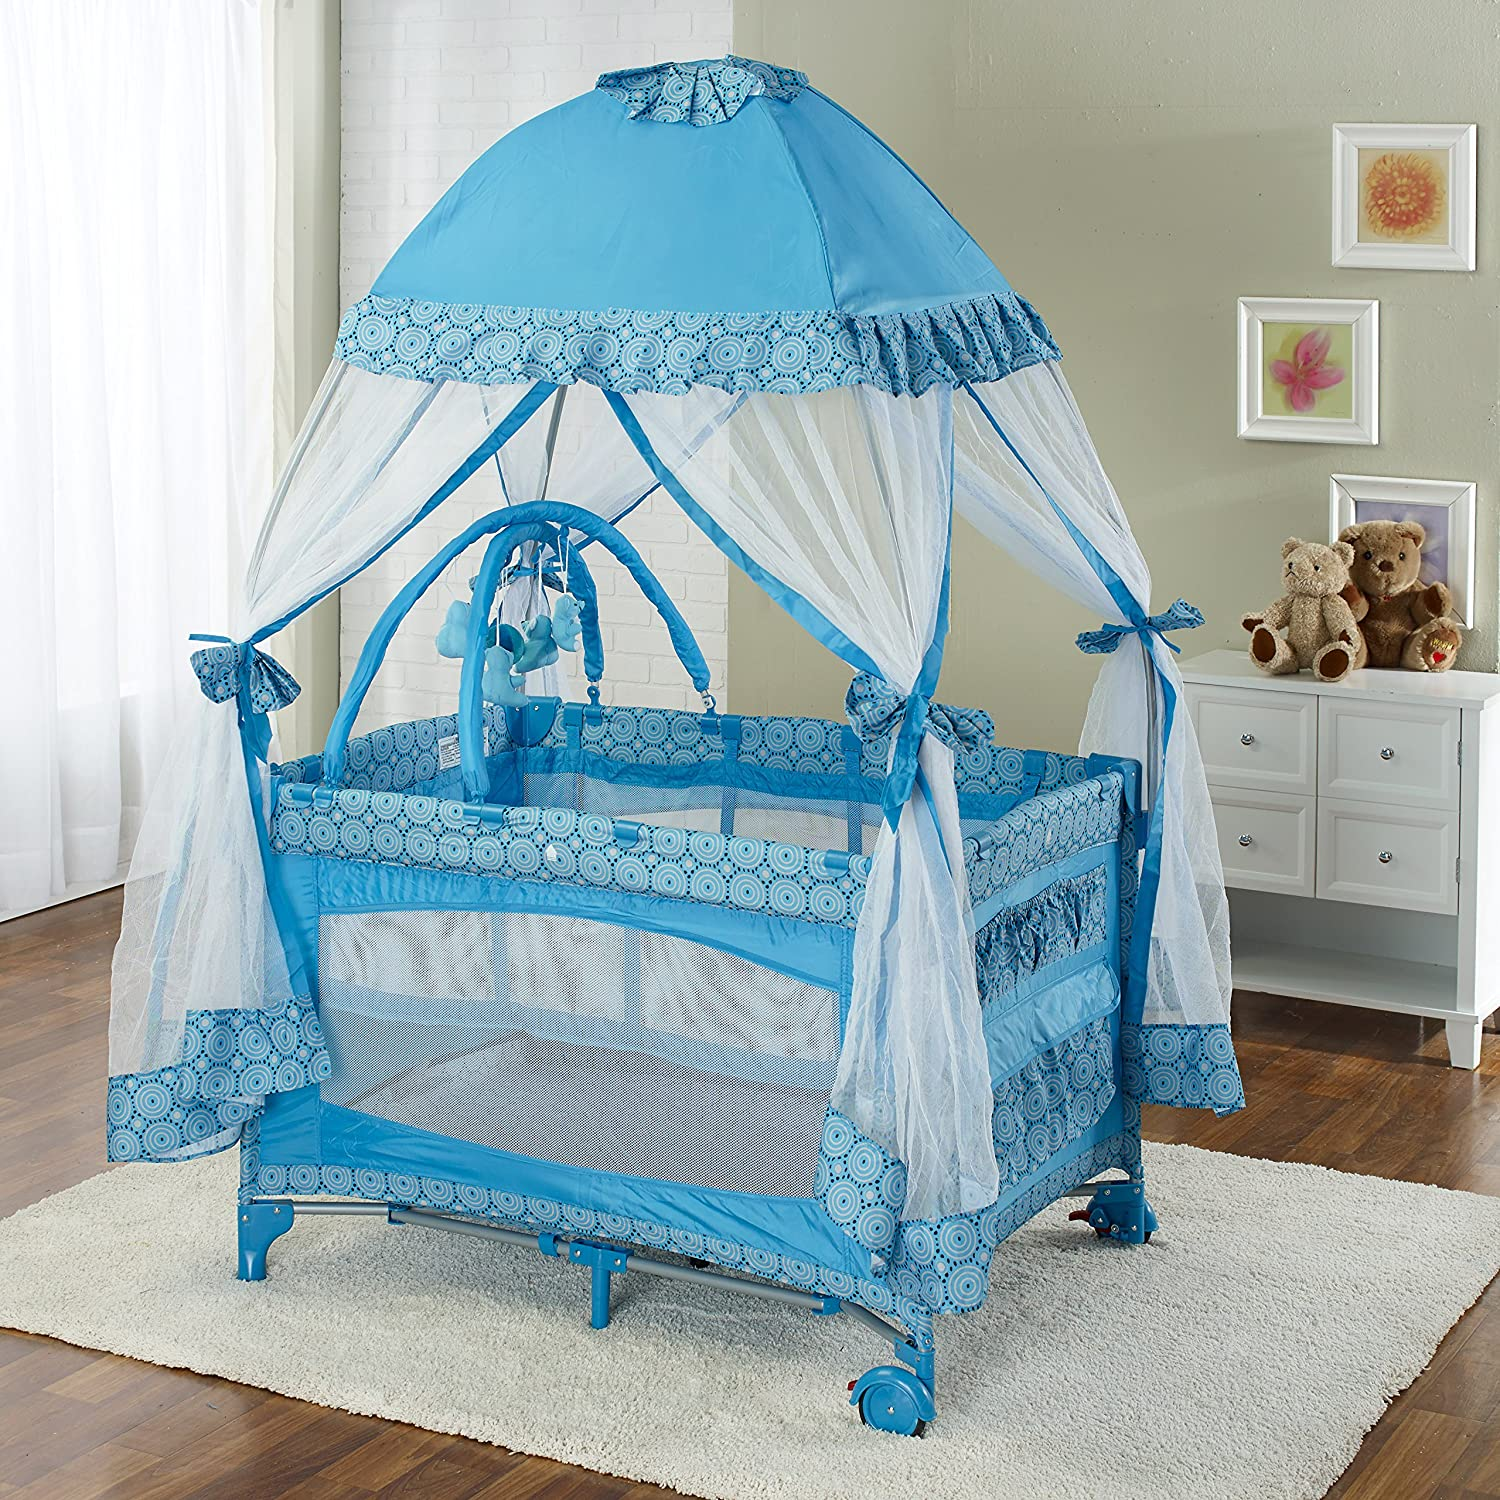 Big Oshi Portable Playard Deluxe Bundle – Nursery Center With Canopy Net Topper – Medium Size – Lightweight, Compact Design, Includes Carry Bag – Perfect for Indoor or Outdoor Backyard Use, Light Blue